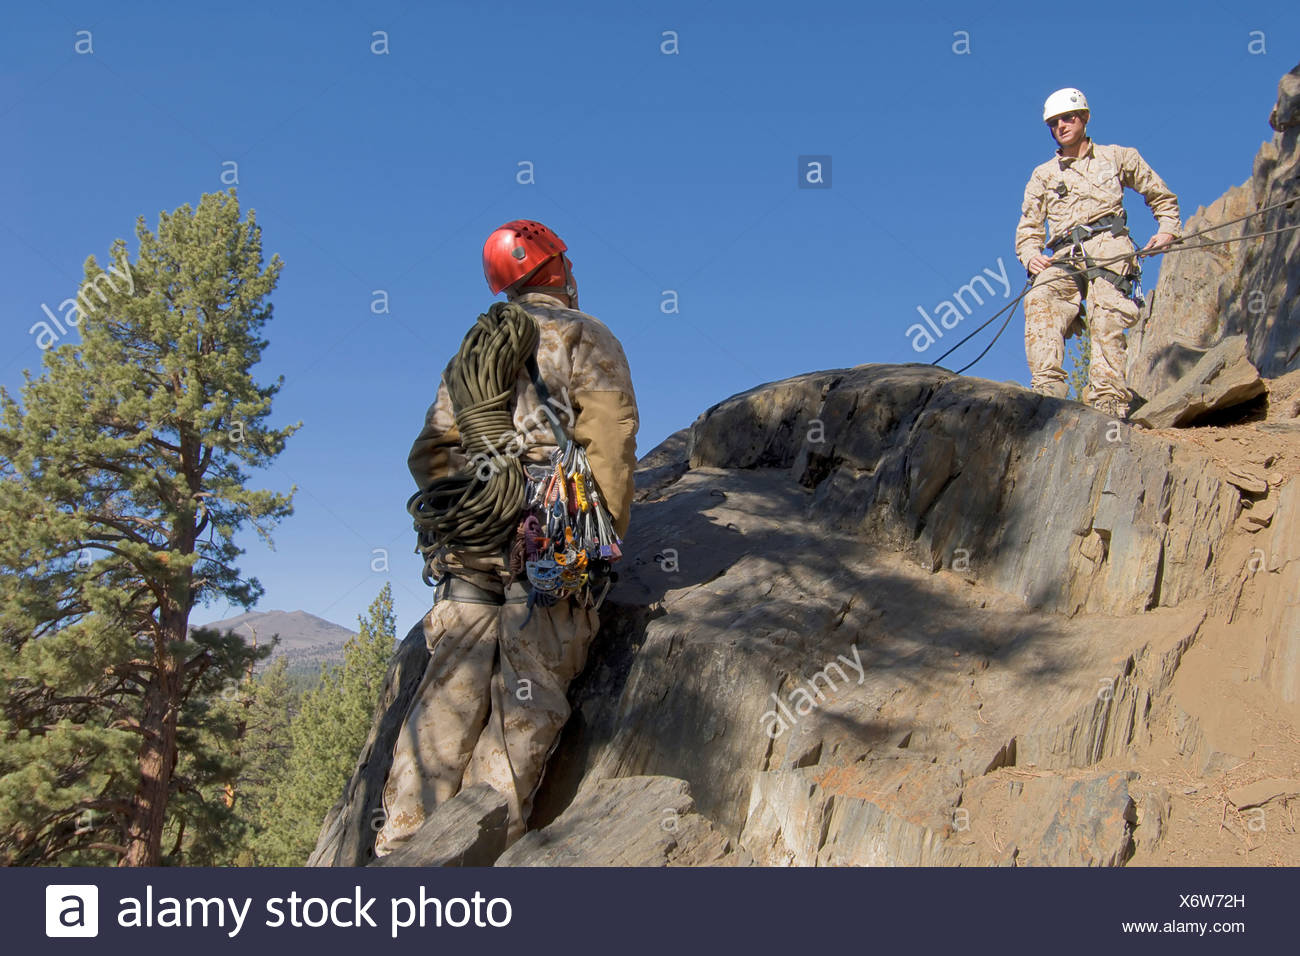 U.S. Marine Corps Mountain Leaders Train at the U.S. Marine Corps Mountain Warfare Training Center - Stock Image